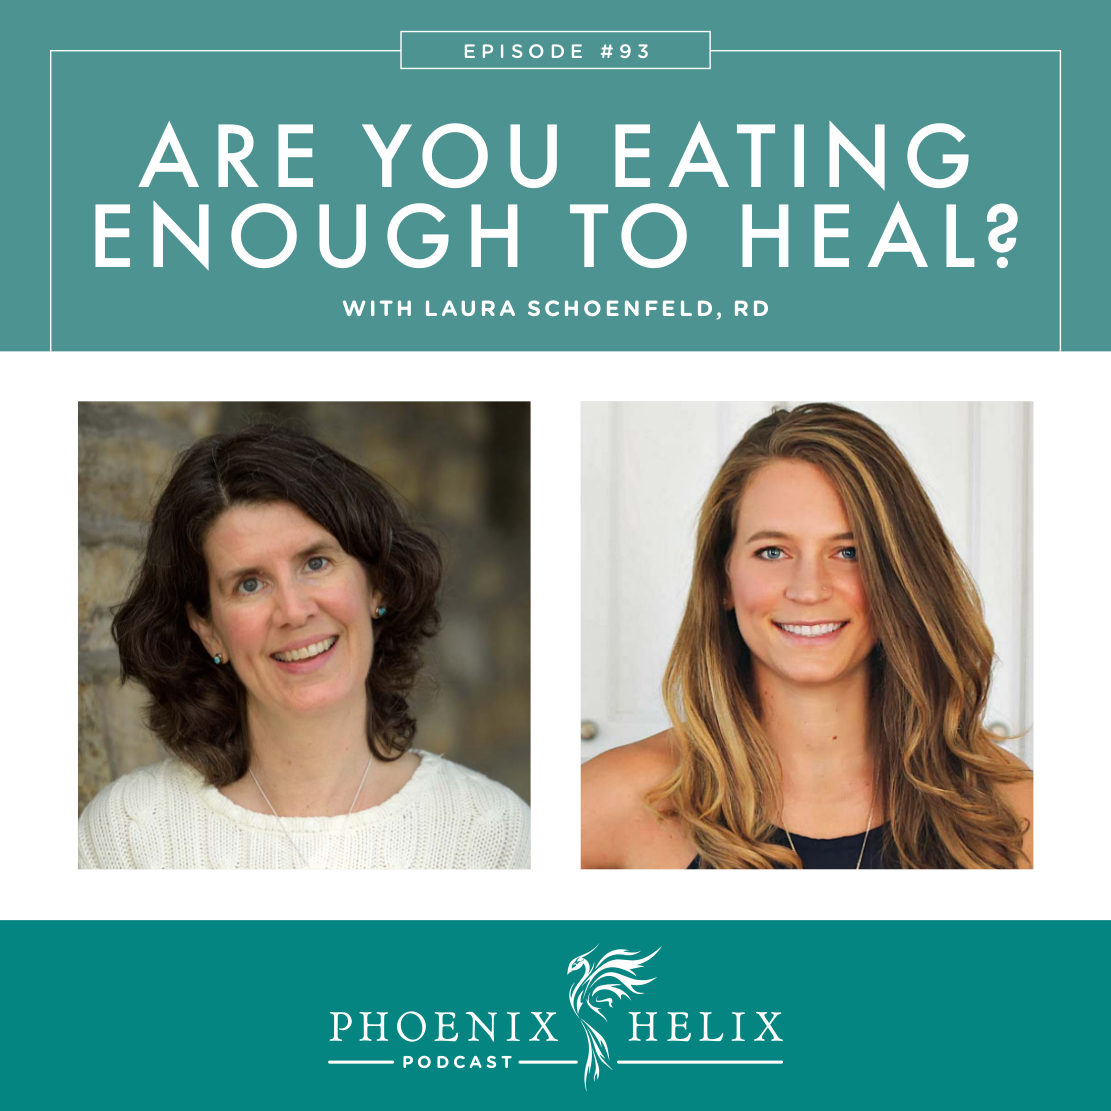 Are You Eating Enough to Heal? with Laura Schoenfeld, RD | Phoenix Helix Podcast